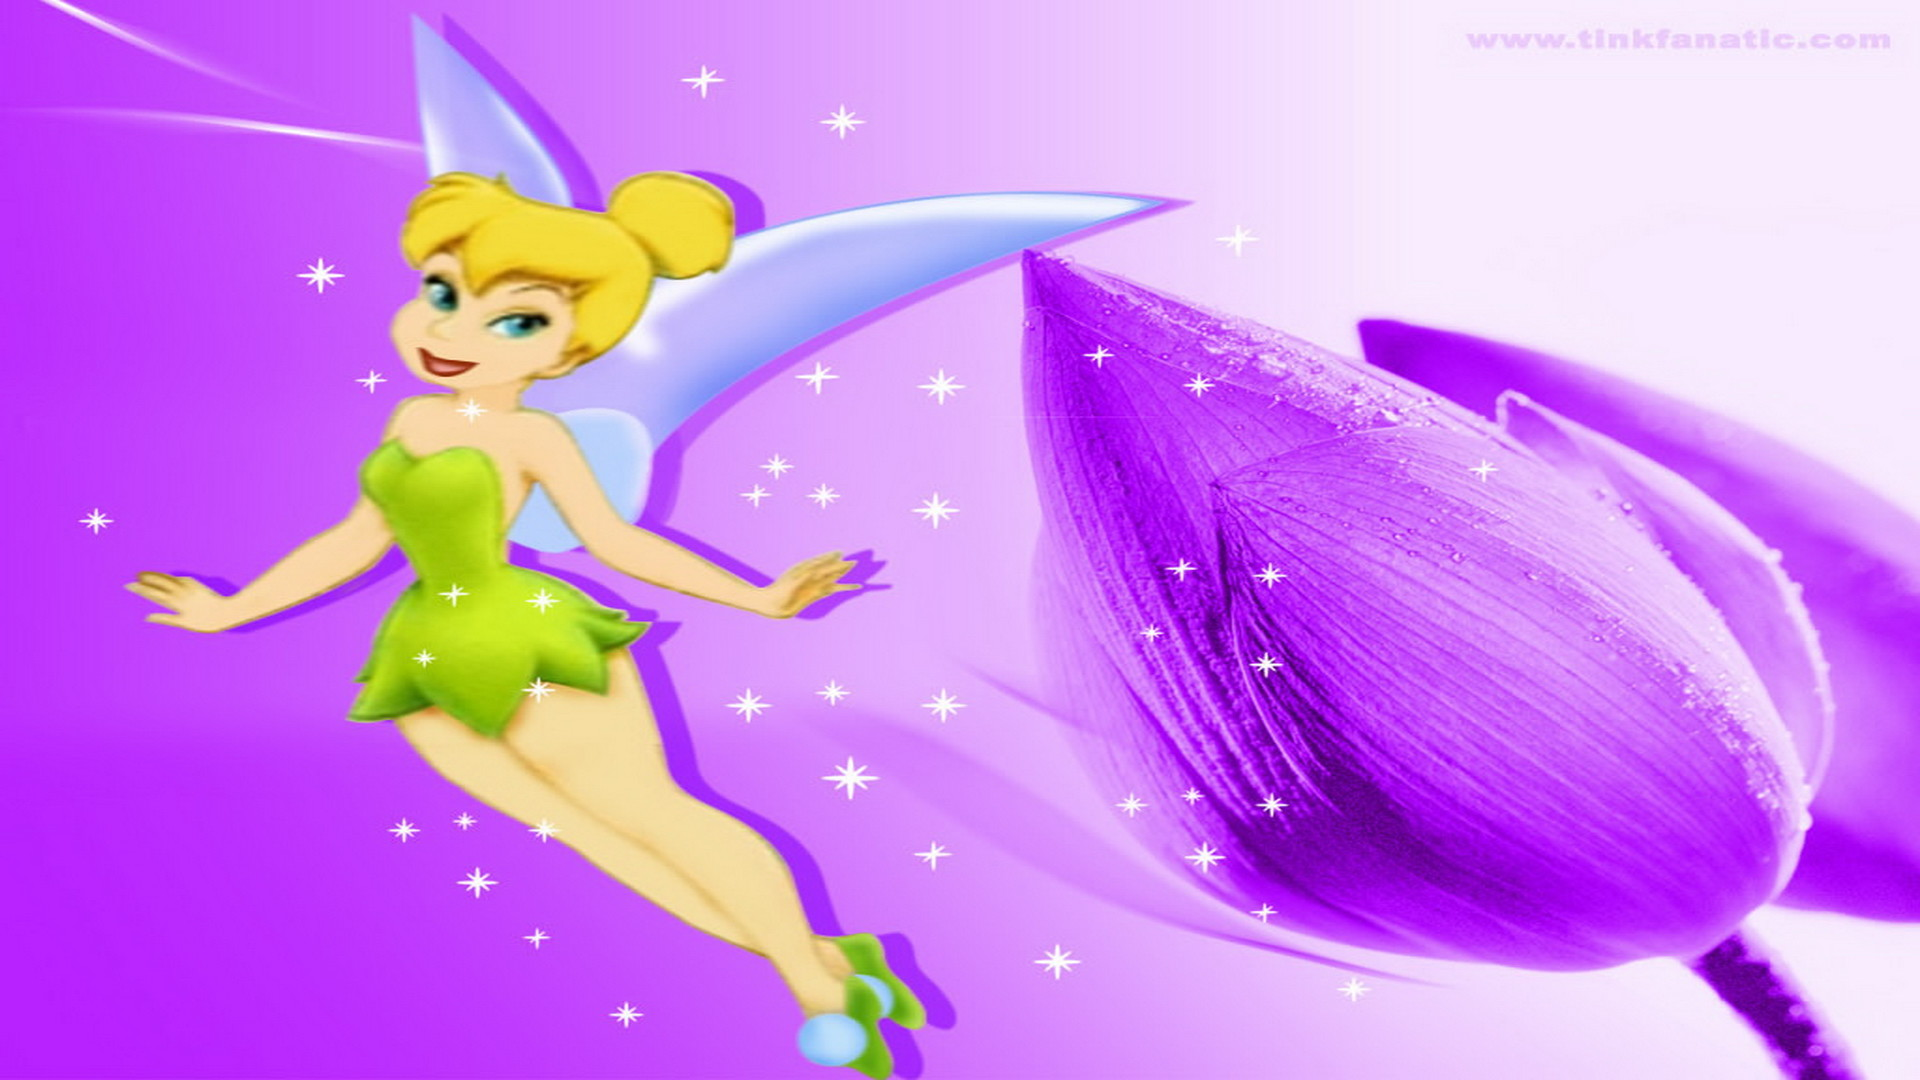 tinkerbell live wallpaper 65 images